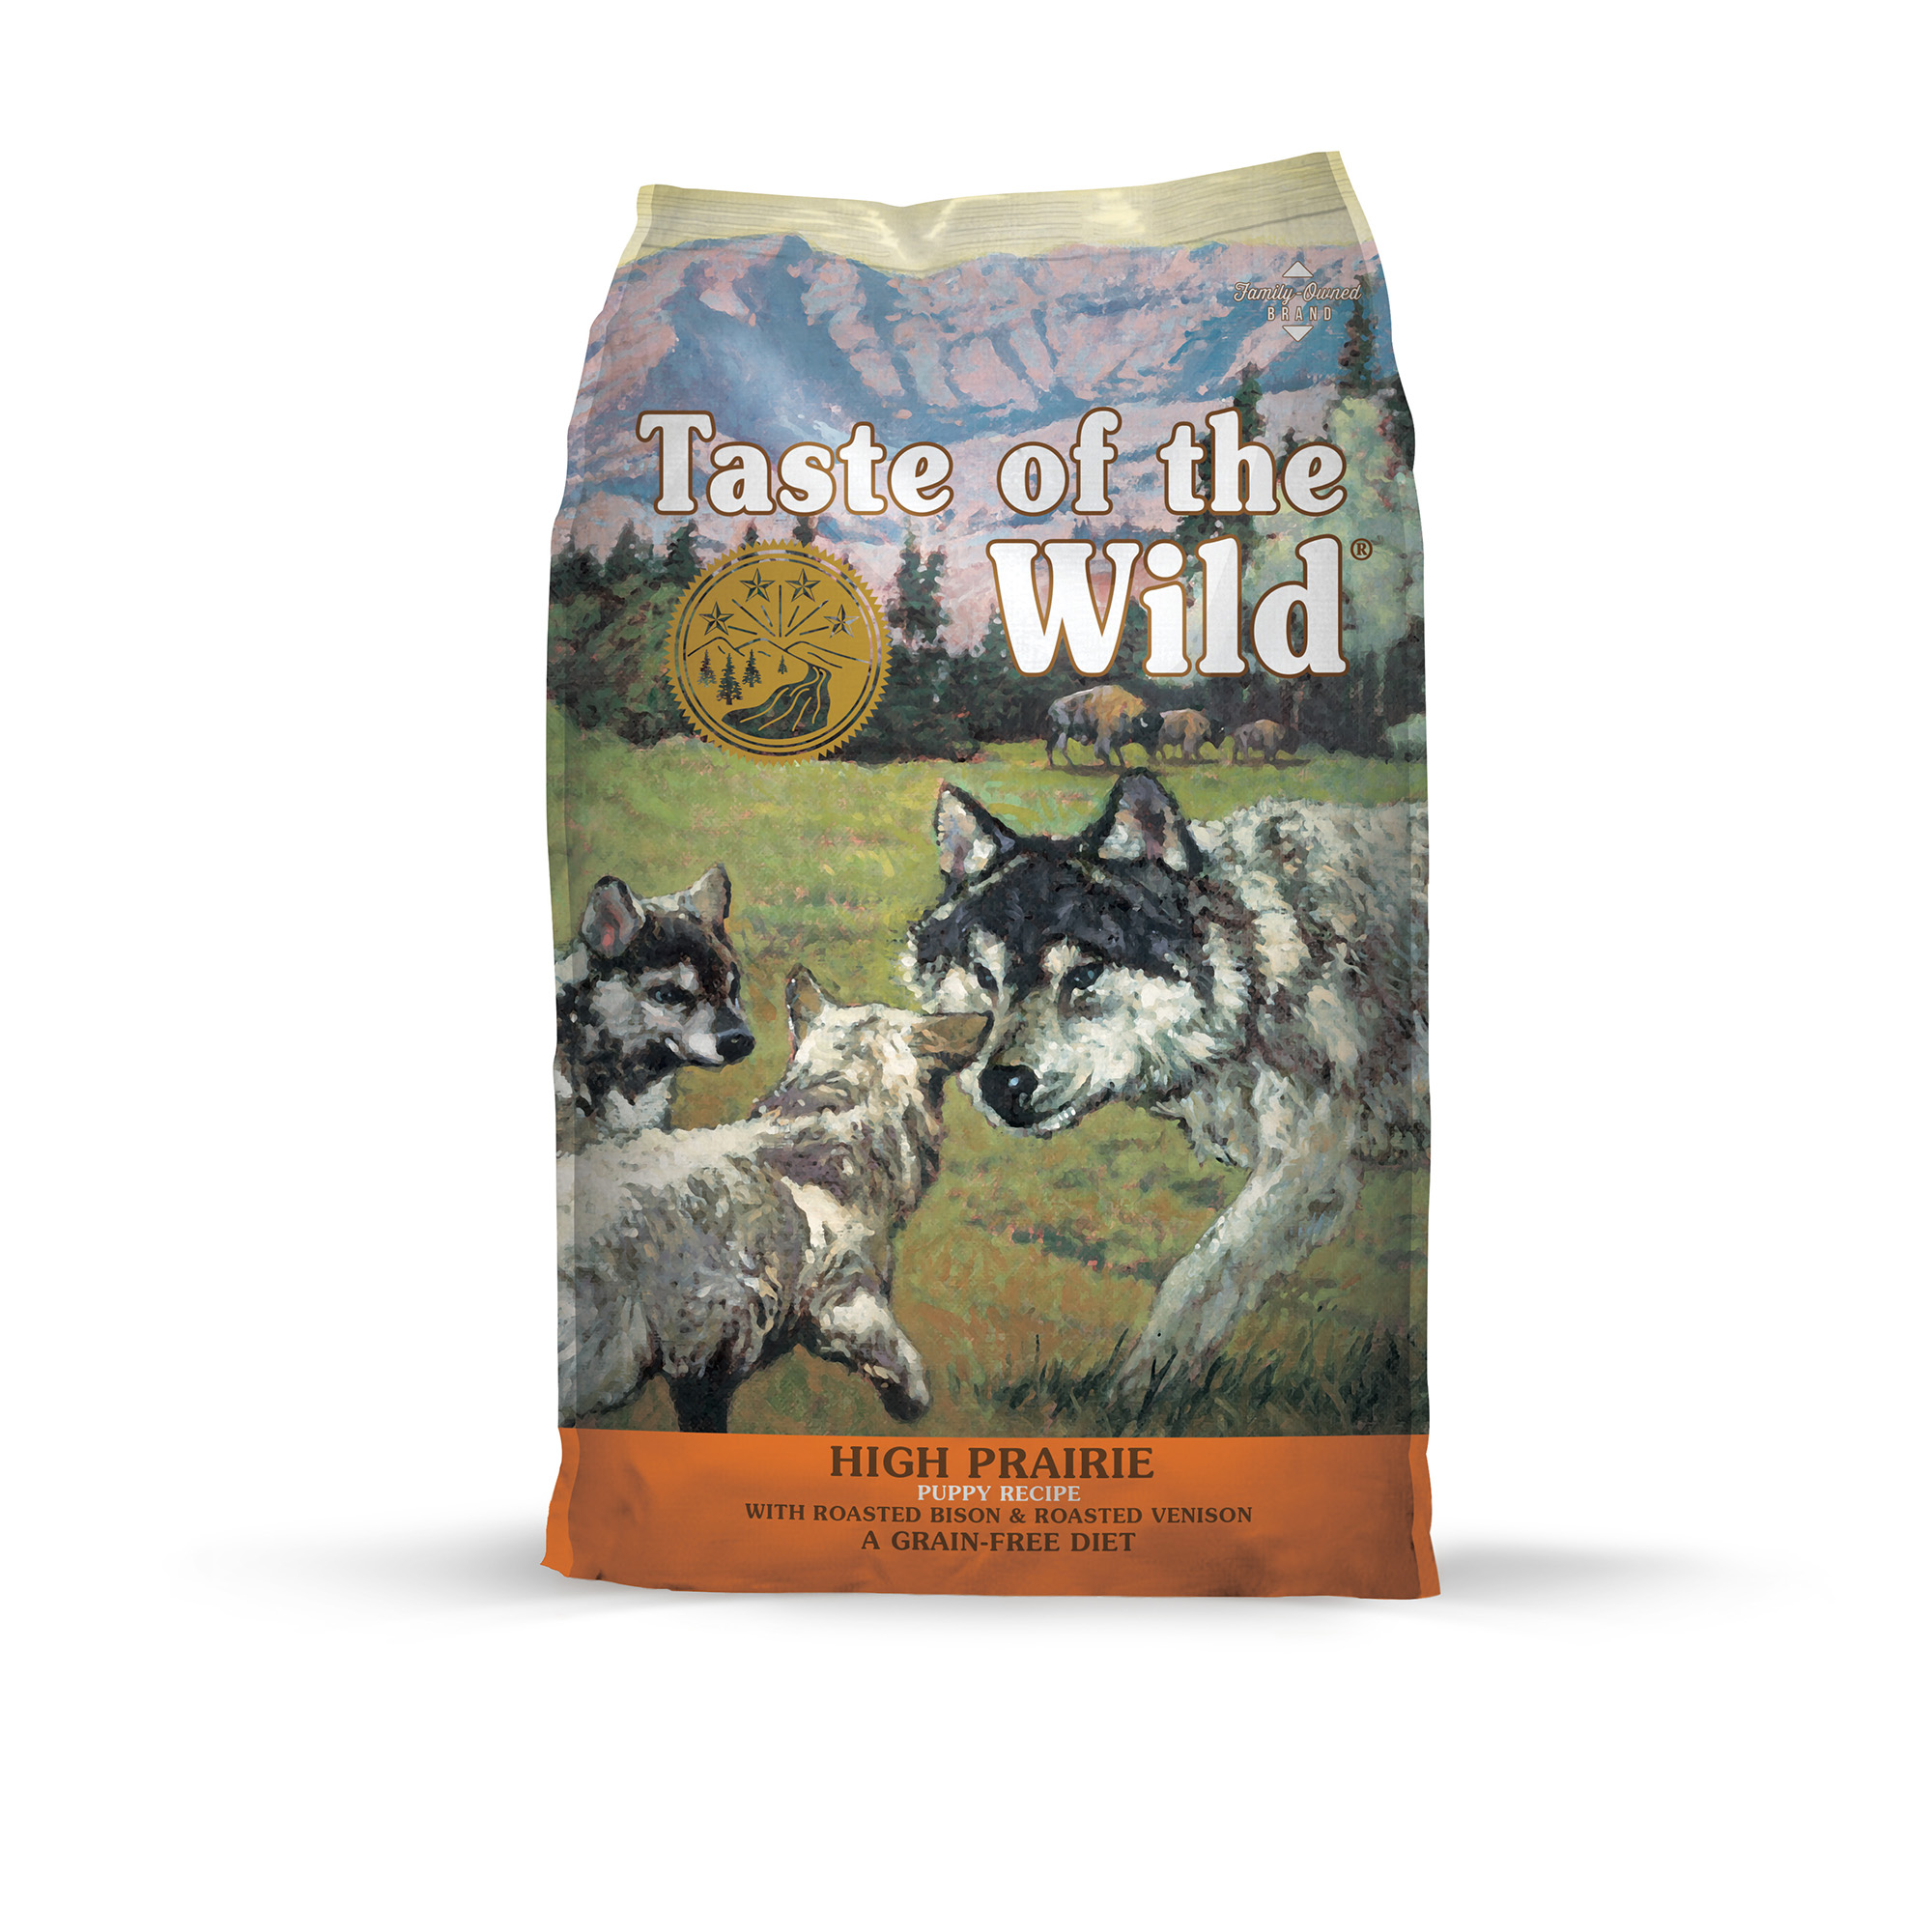 Taste of the Wild High Prairie Grain-Free Dry Puppy Food with Roasted Venison & Bison 15lb